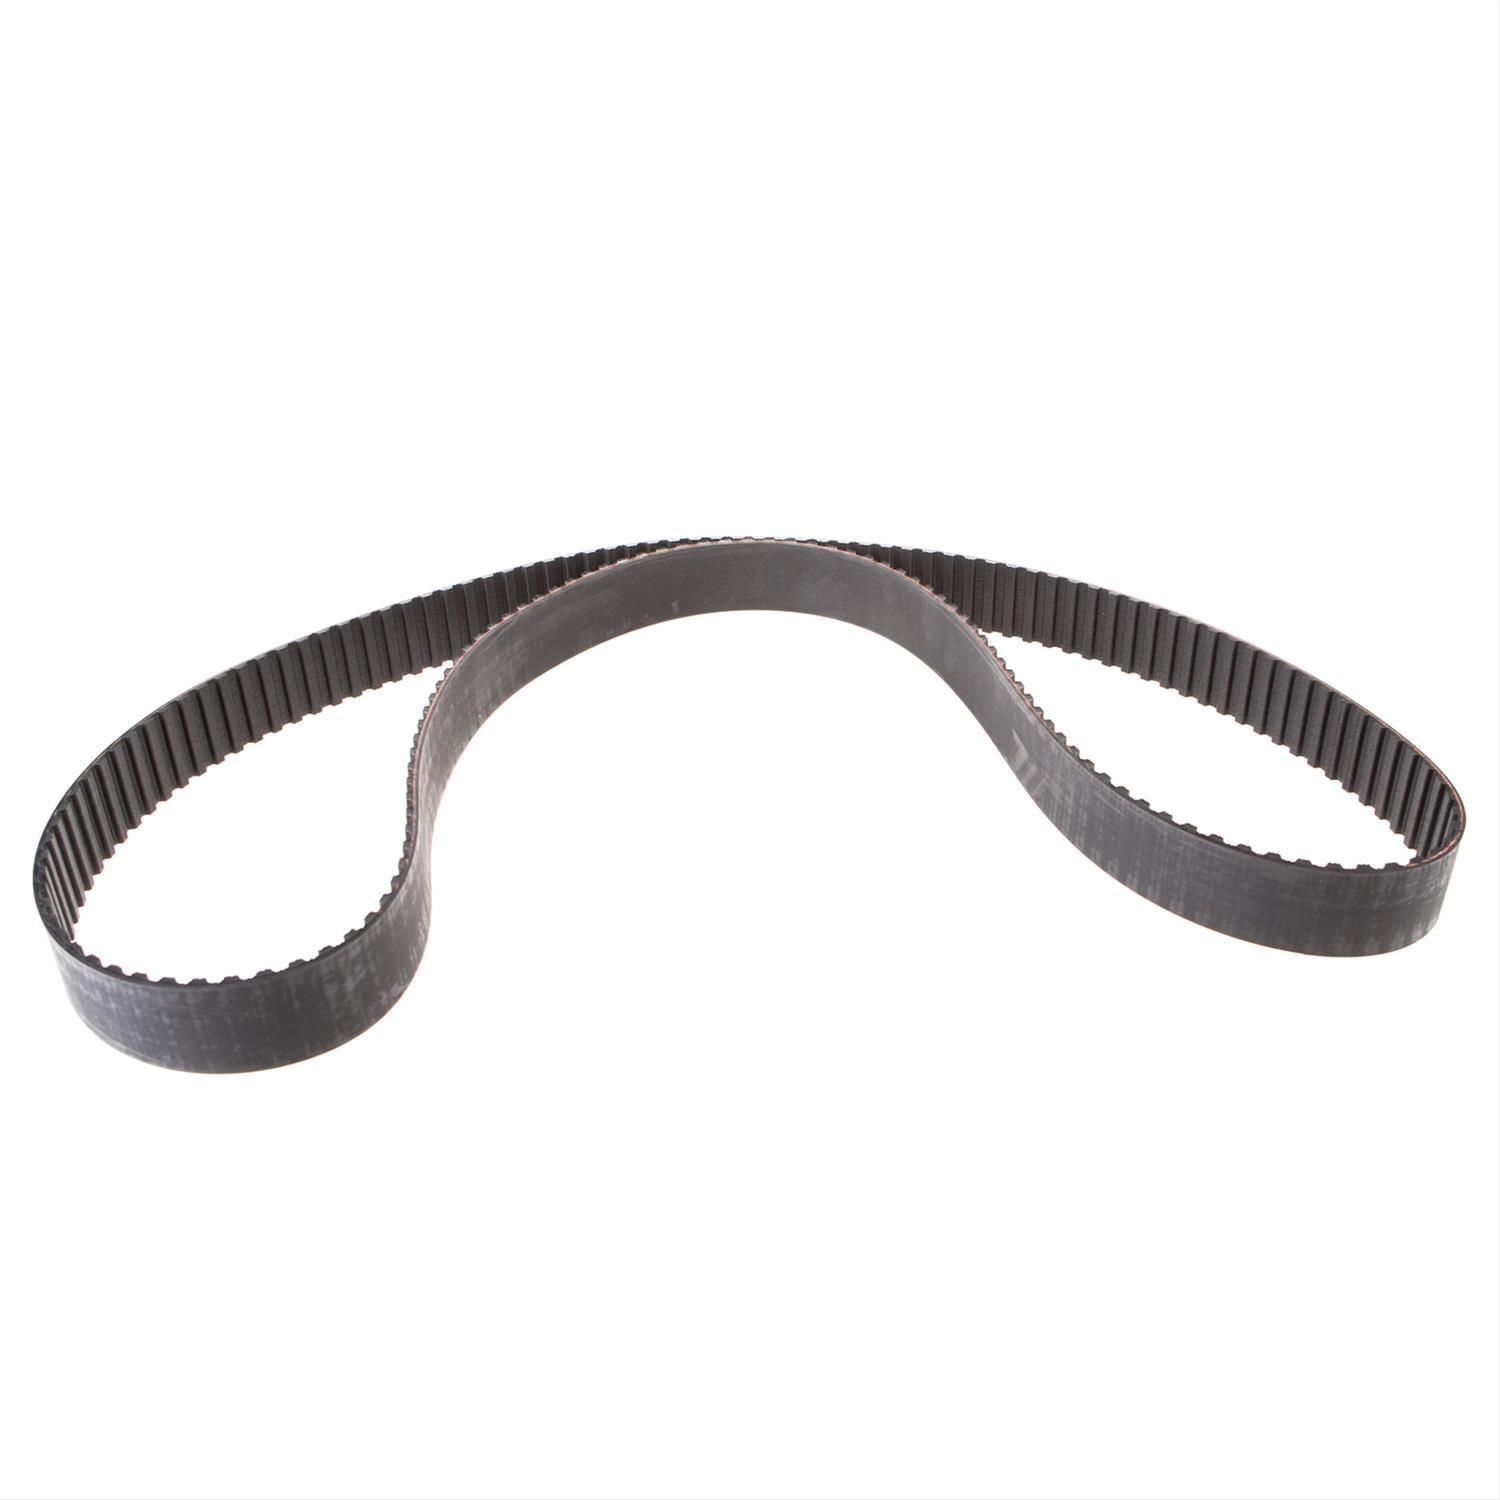 Melling Timing Belts B-0192 on